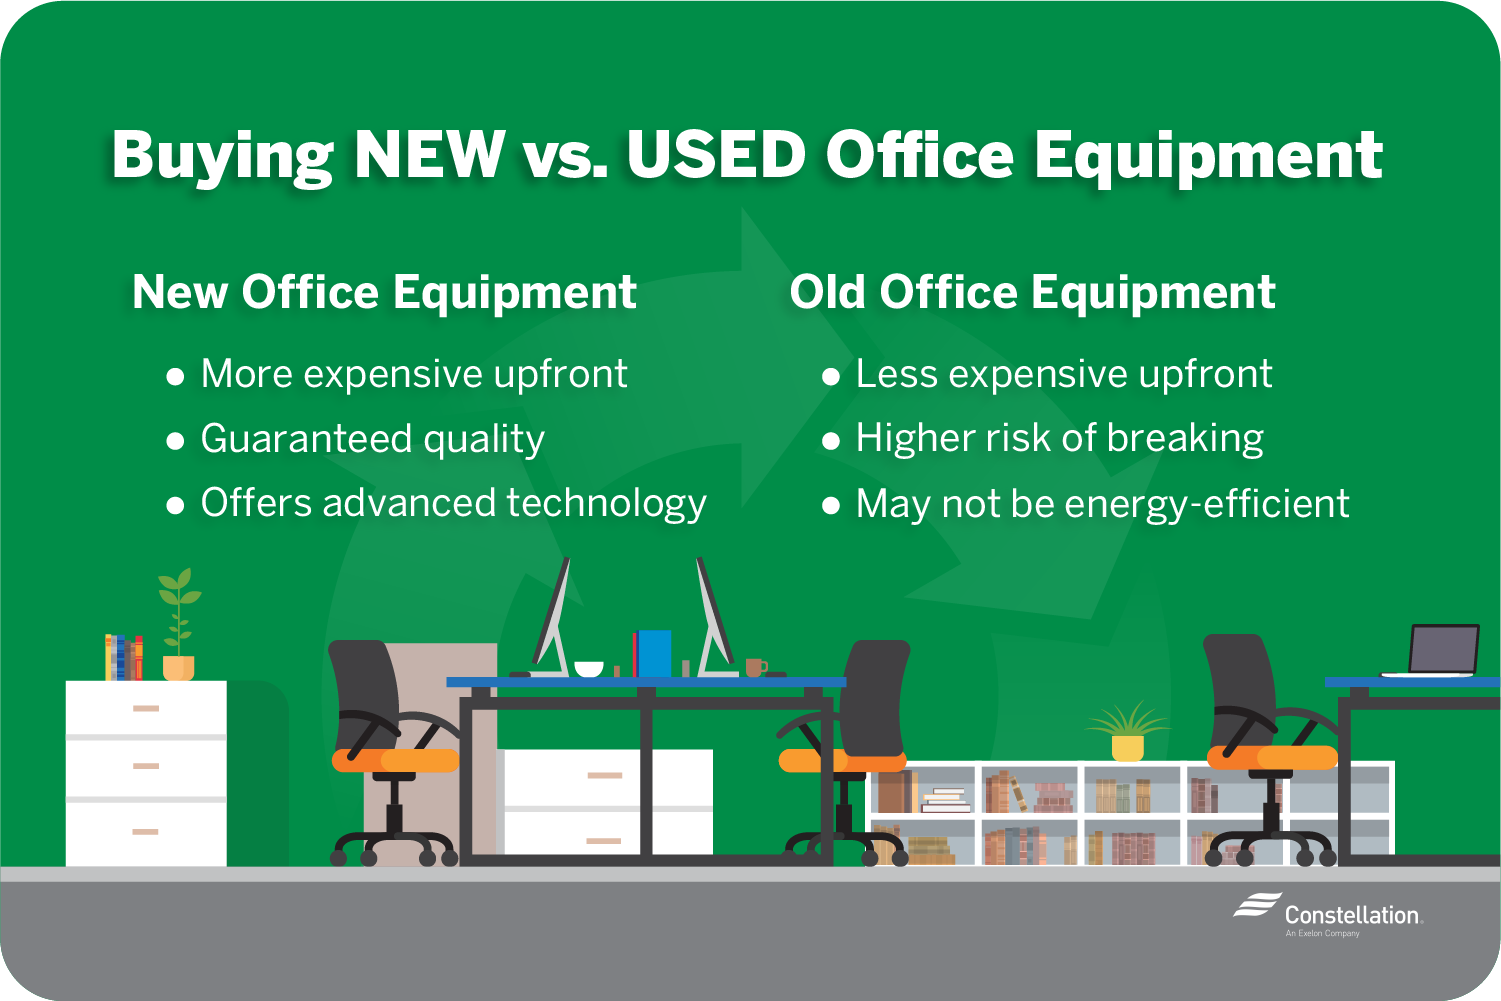 New vs used office equipment